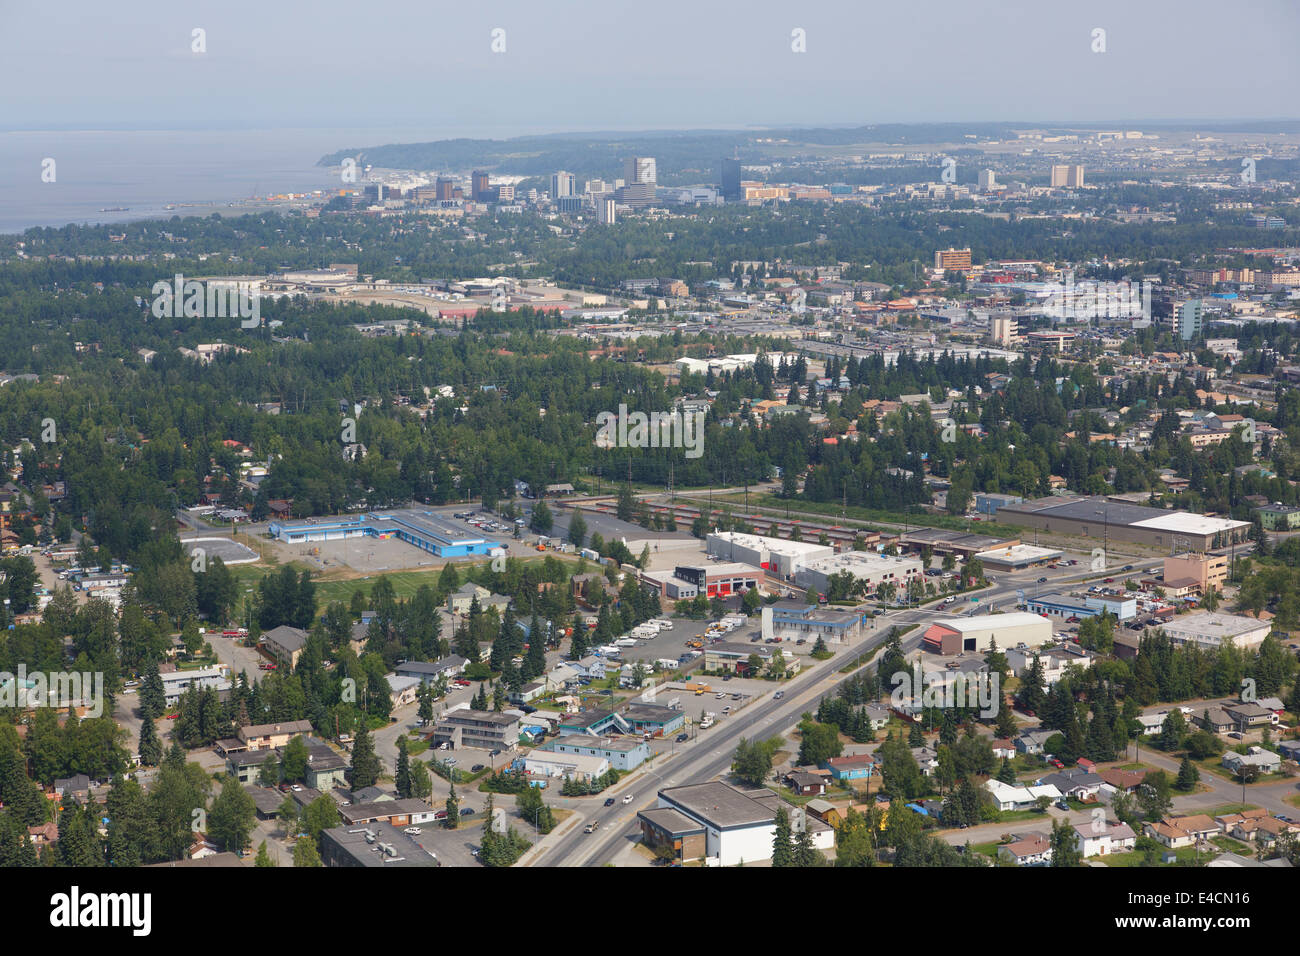 Aerial Anchorage, Alaska. - Stock Image